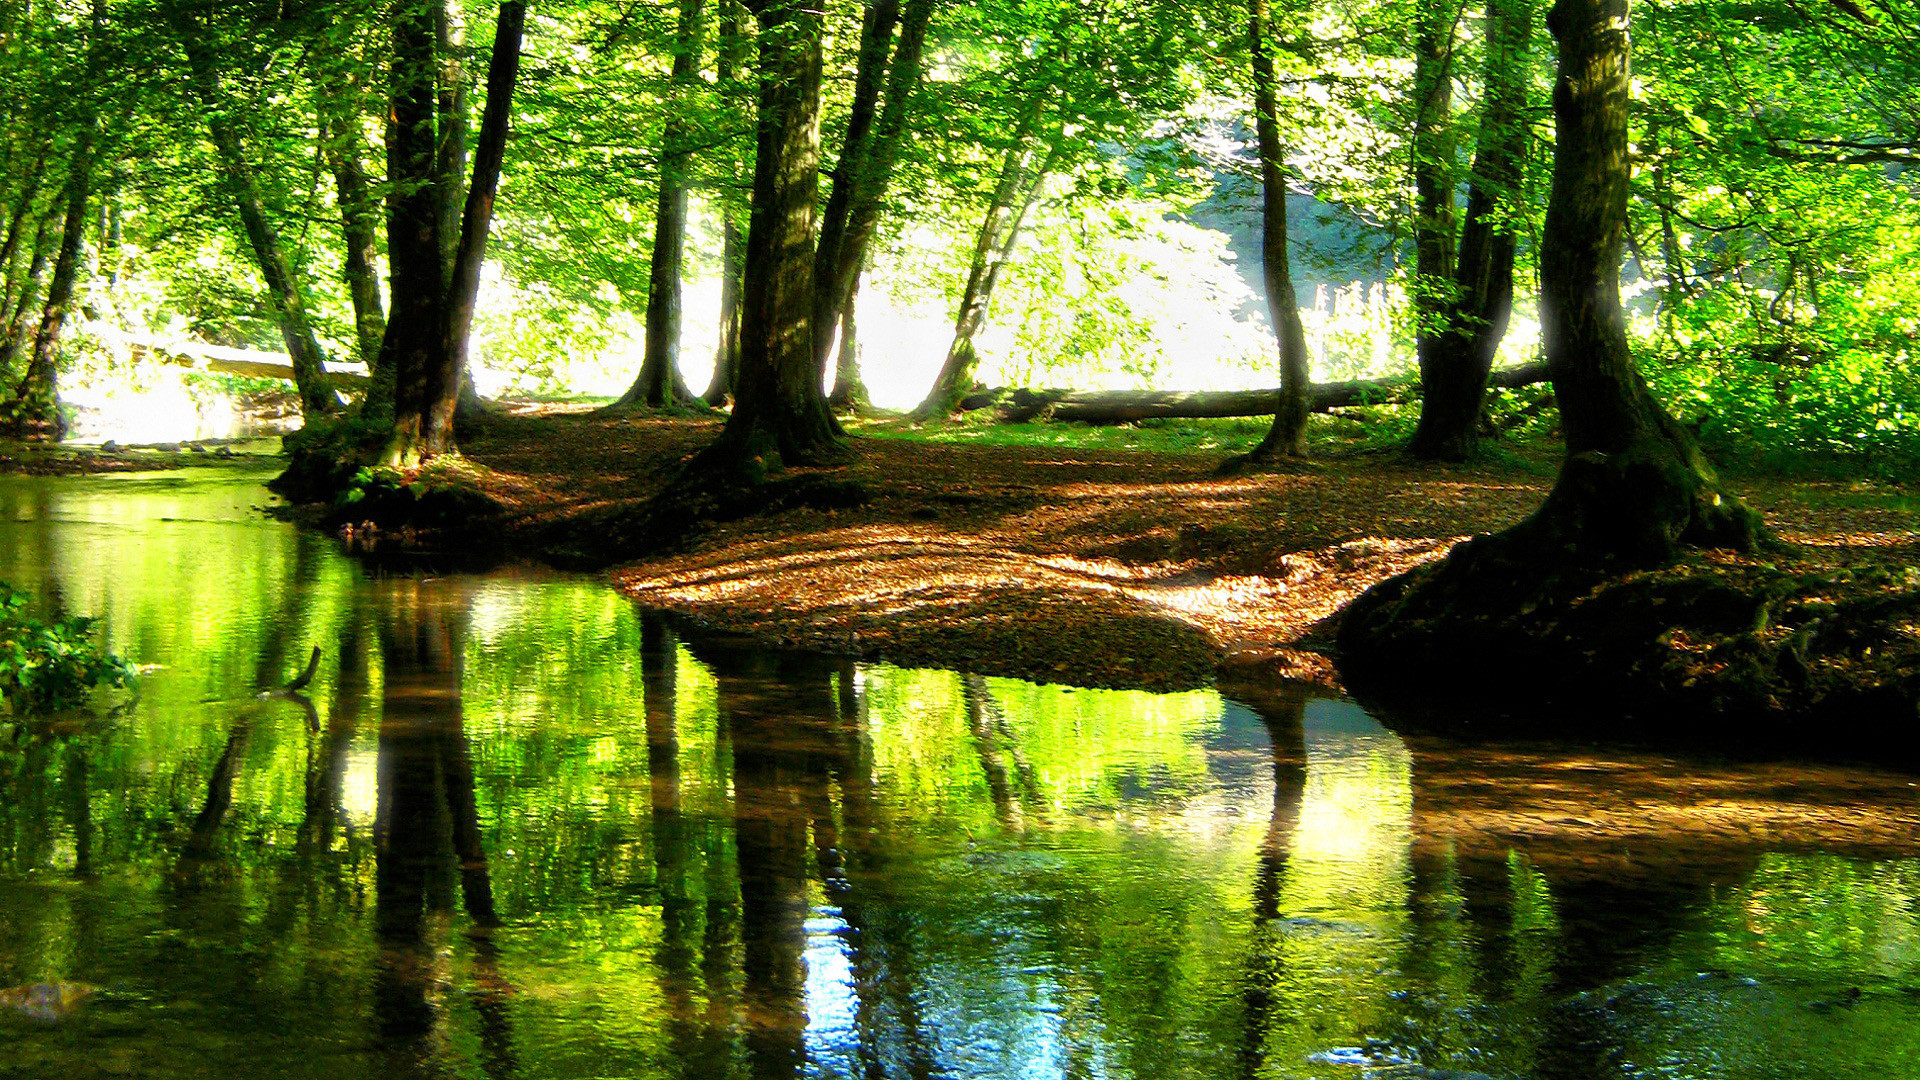 HD Landscape Wallpapers beautiful stream in a cool Forst River Nature  Wallpapers ,beads,forest stream.